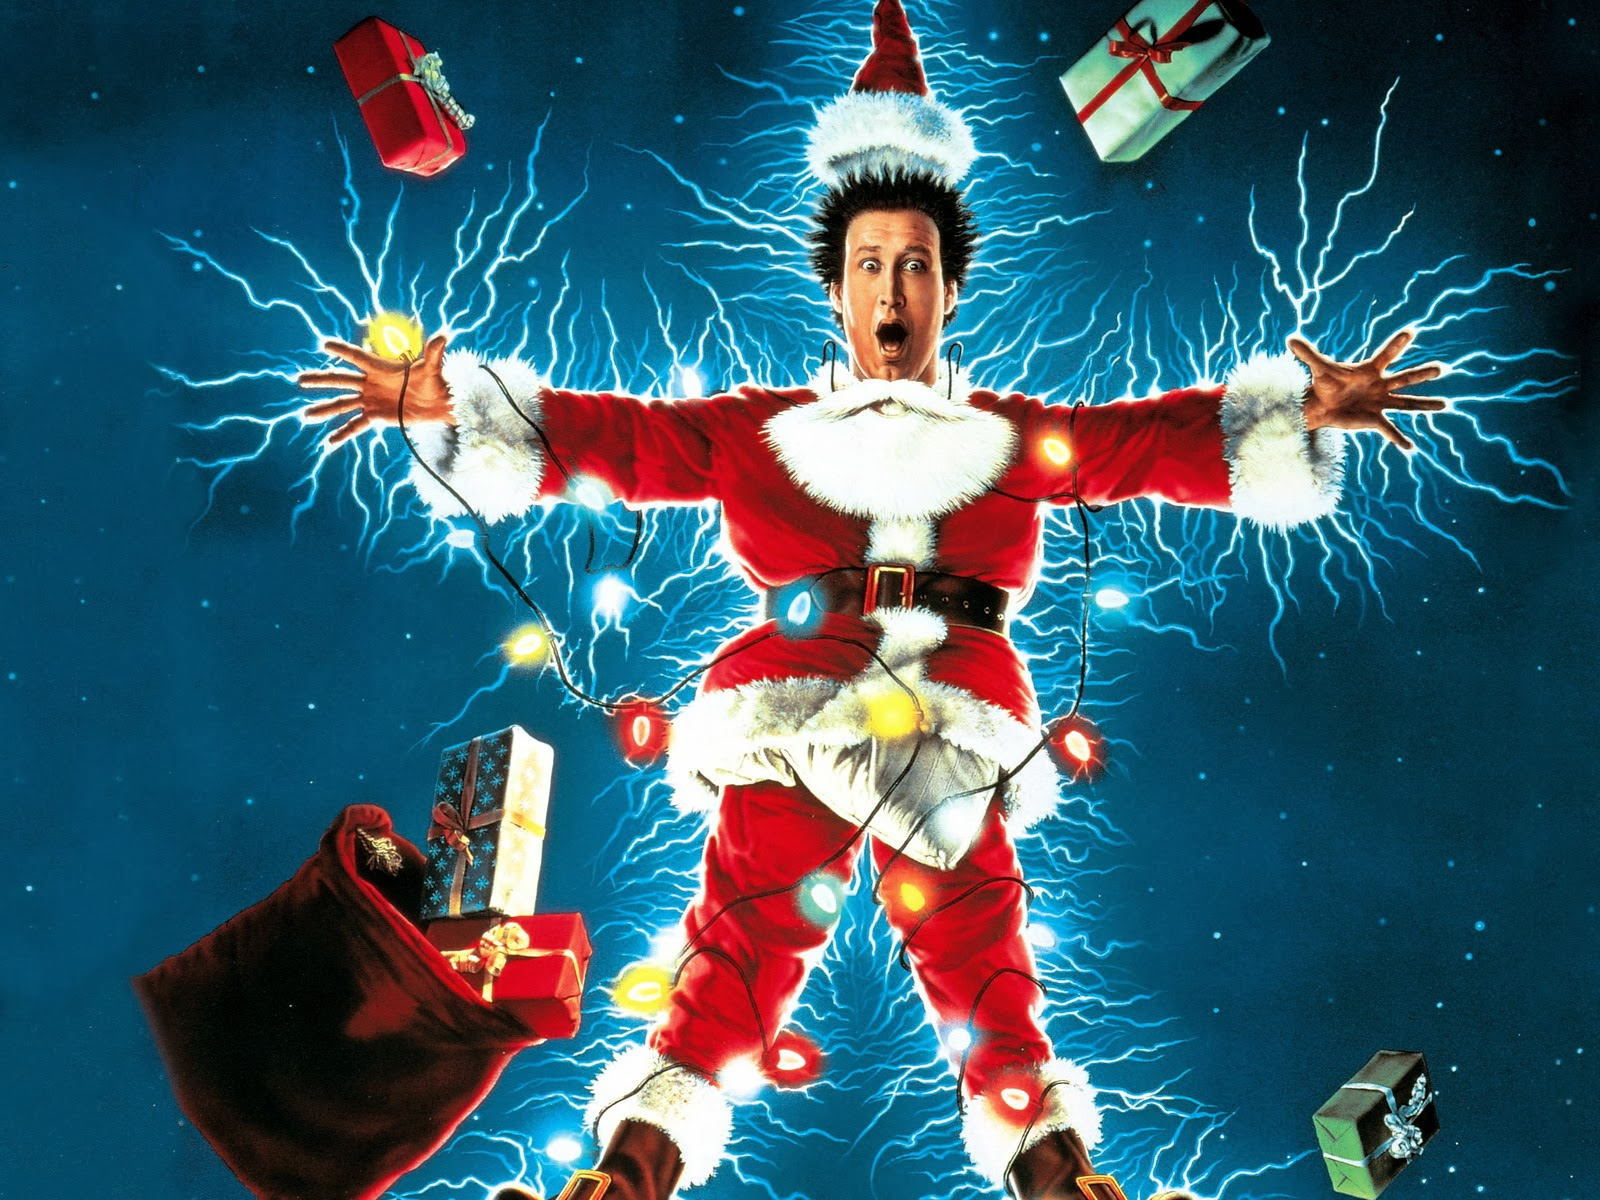 What39;s your Favorite Christmas Movie?